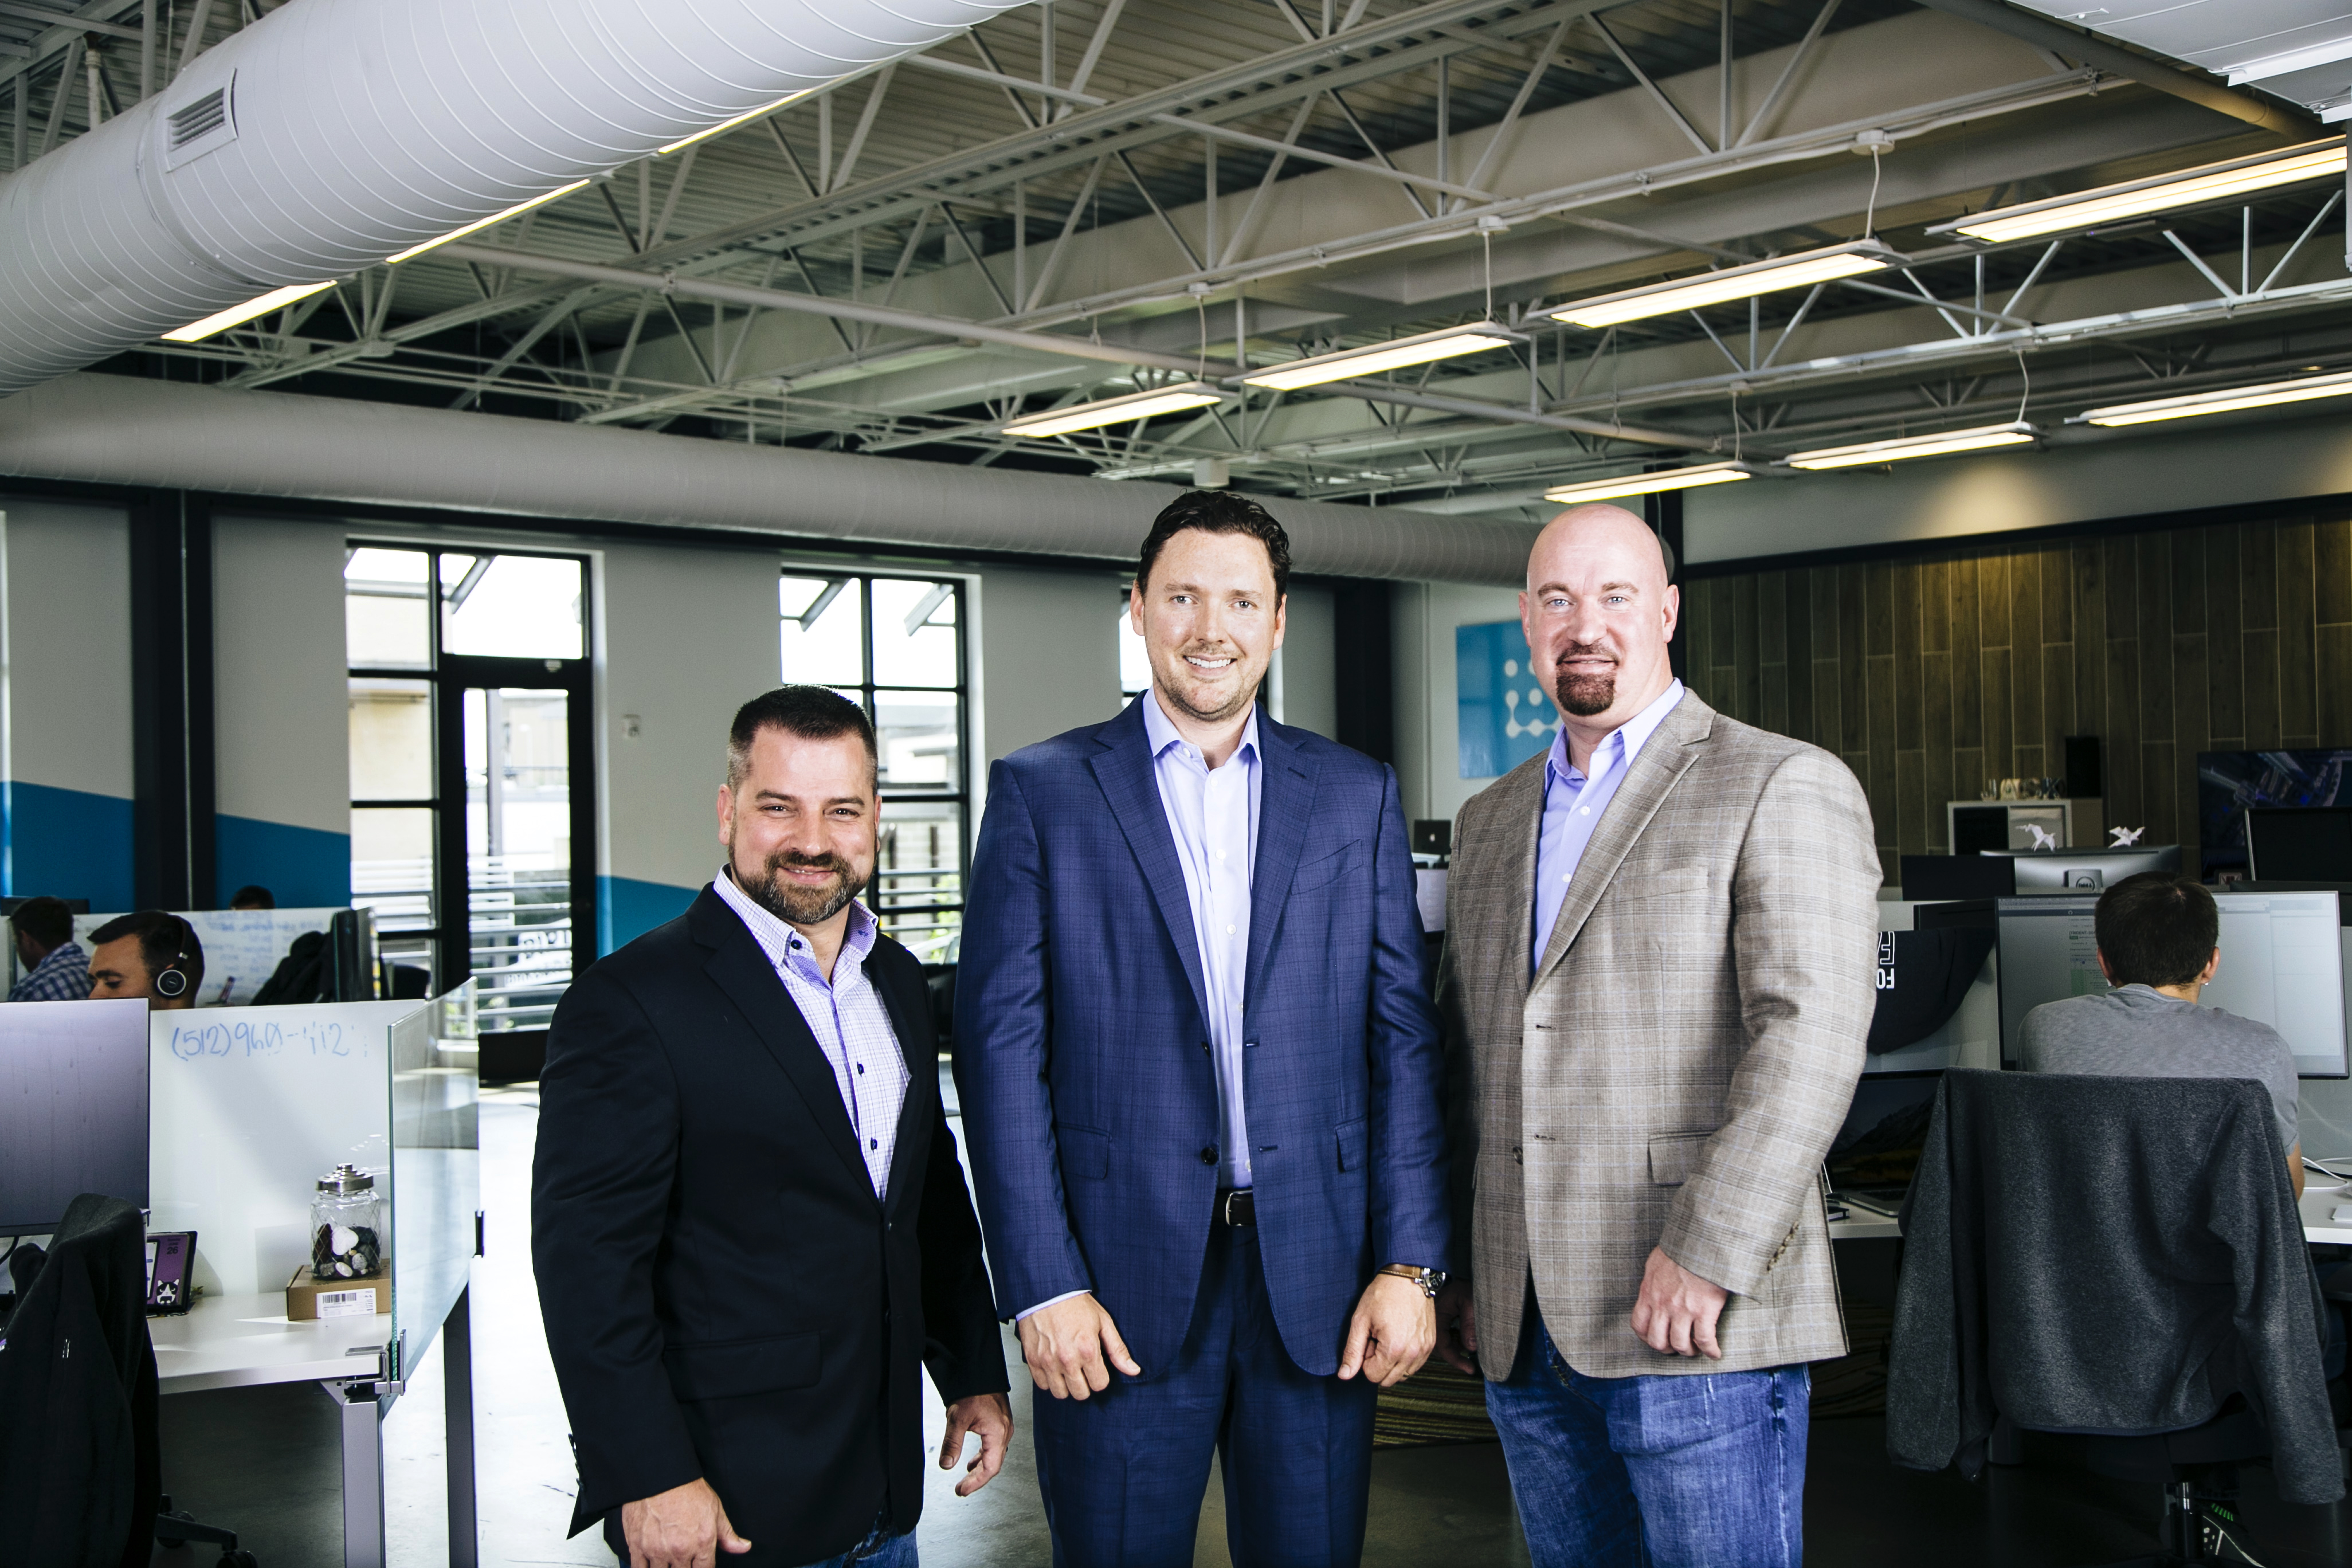 Cybersecurity startup JASK's team includes, from left to right, tech chief JJ Guy (ex-Carbon Black), CEO Greg Martin (ex-Anomali and ArcSight), and VP of engineering Rob Fry (ex-Netflix).